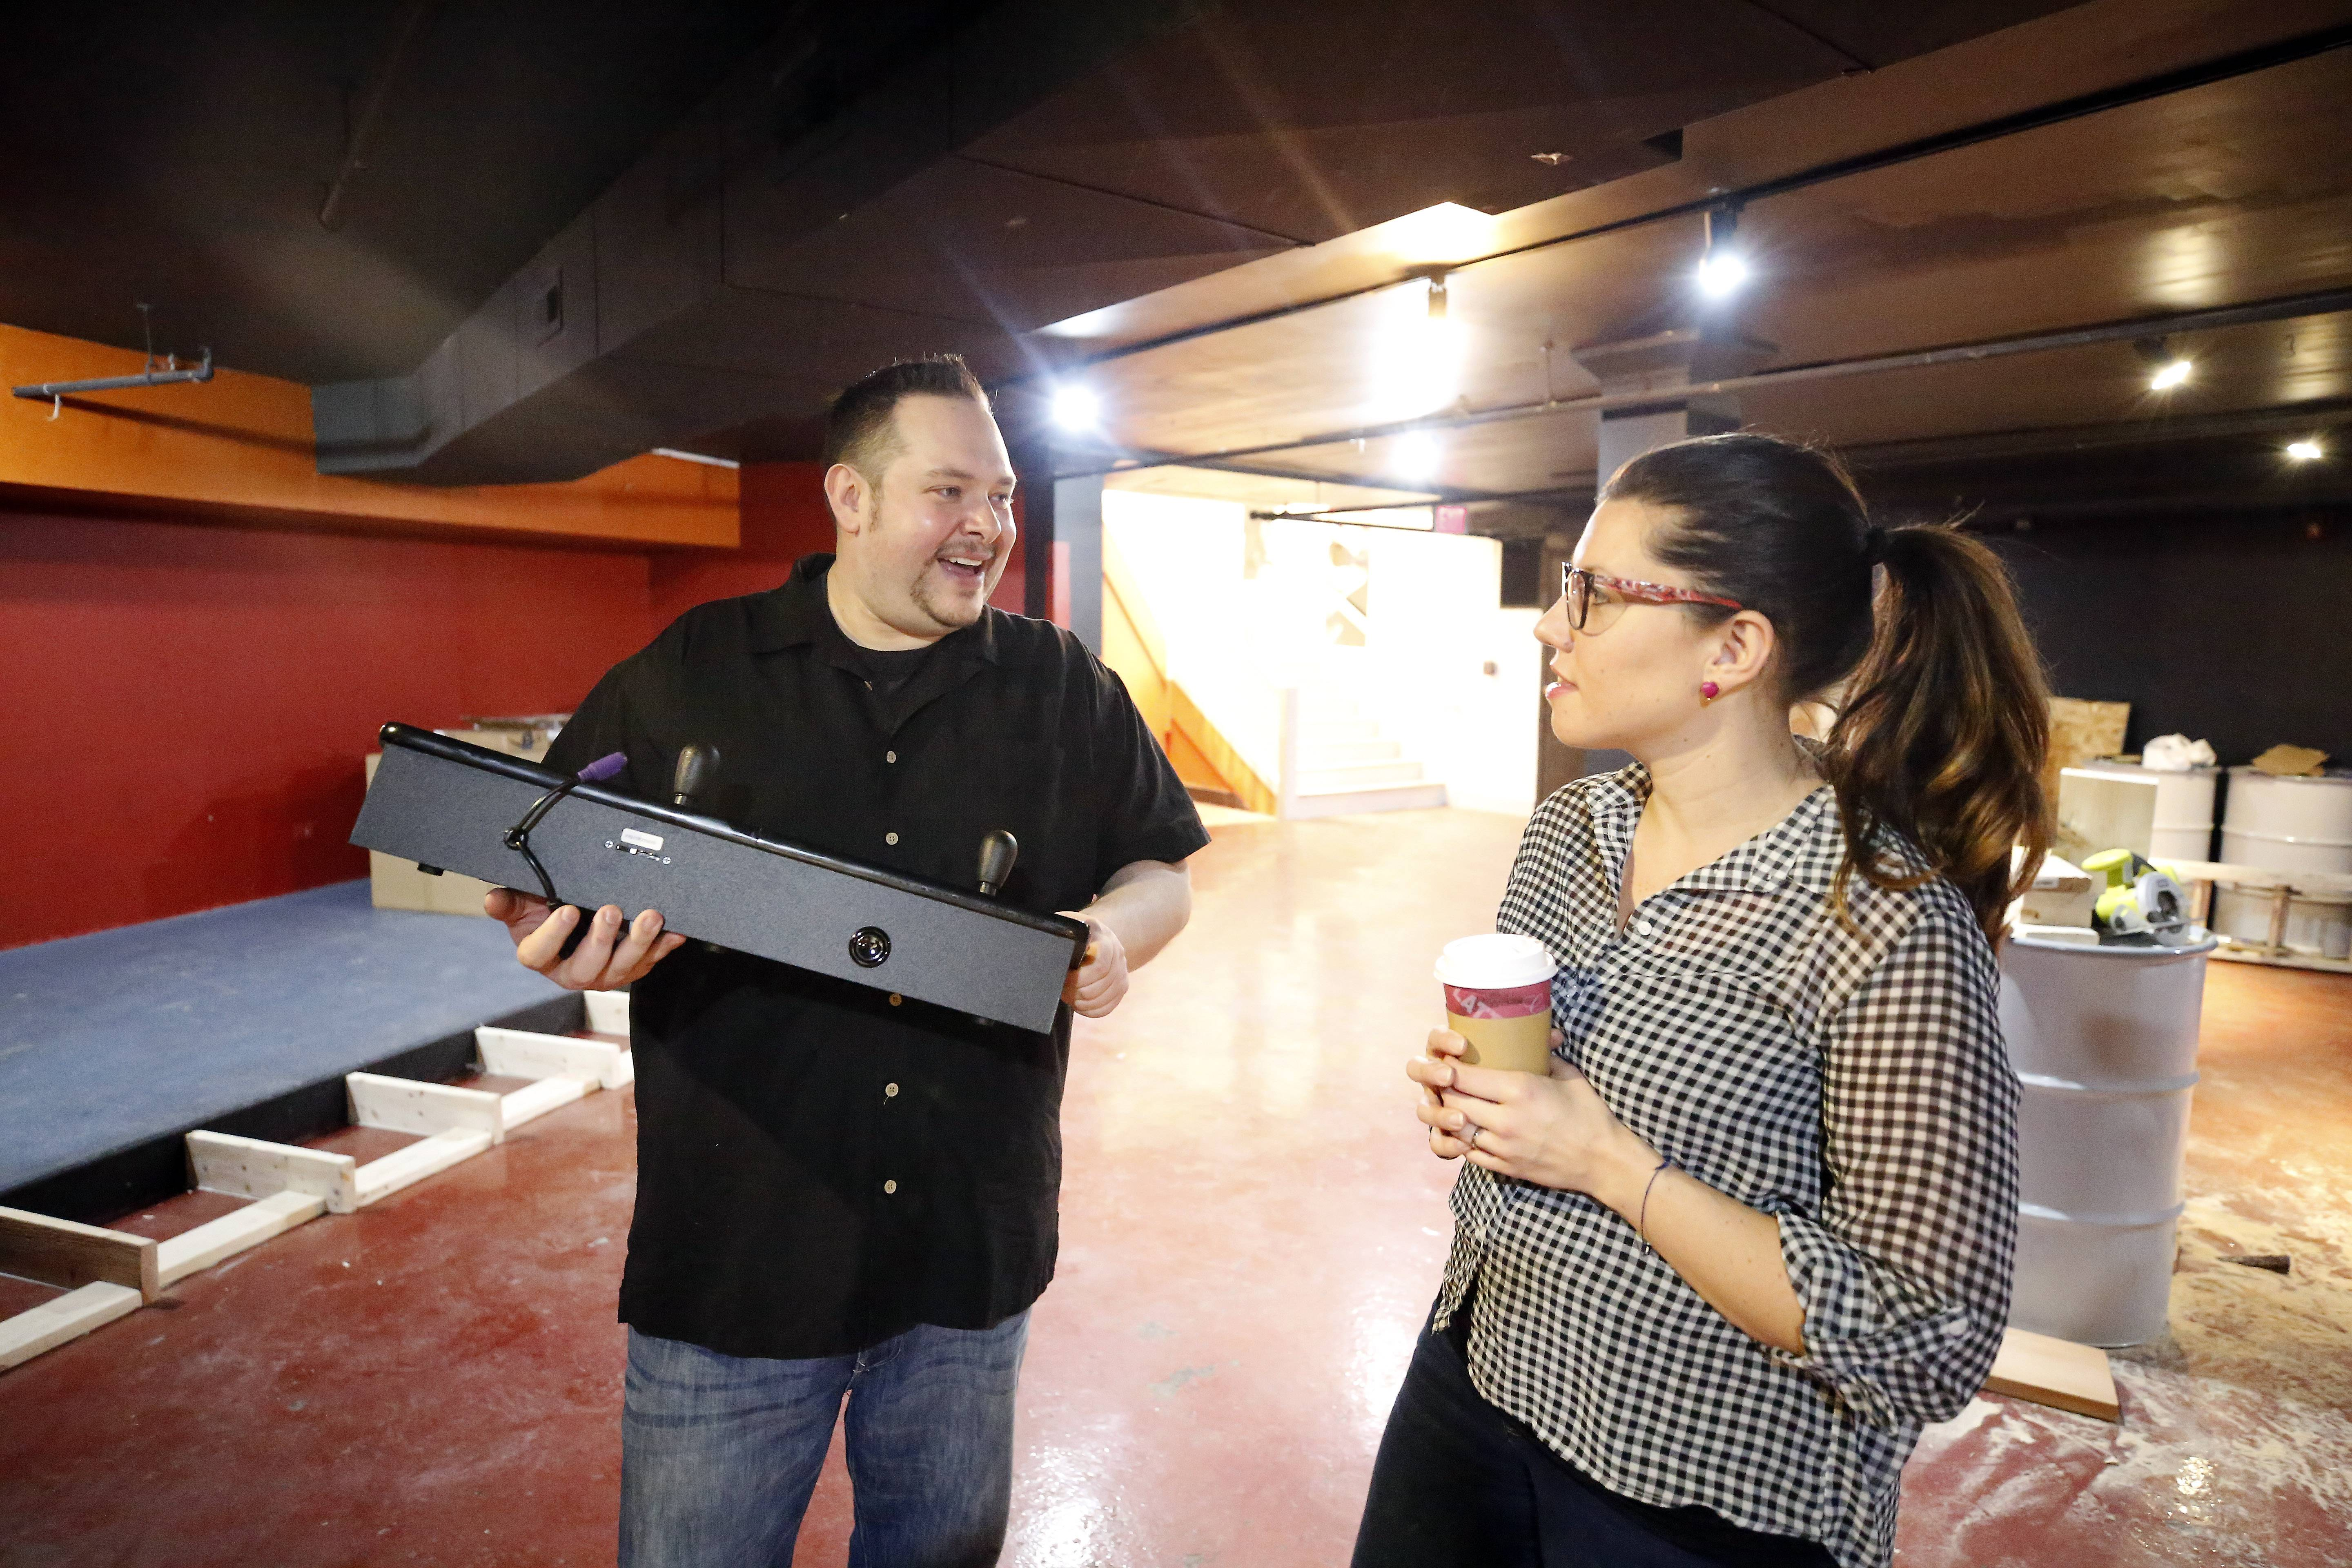 Matthew Habib and his wife, Jennifer Polit, plan to open Legit Dogs & Ice -- the Bomb Shelter in the basement of Dream Hall at 51 Grove Ave. with a menu that will mirror their food truck's.